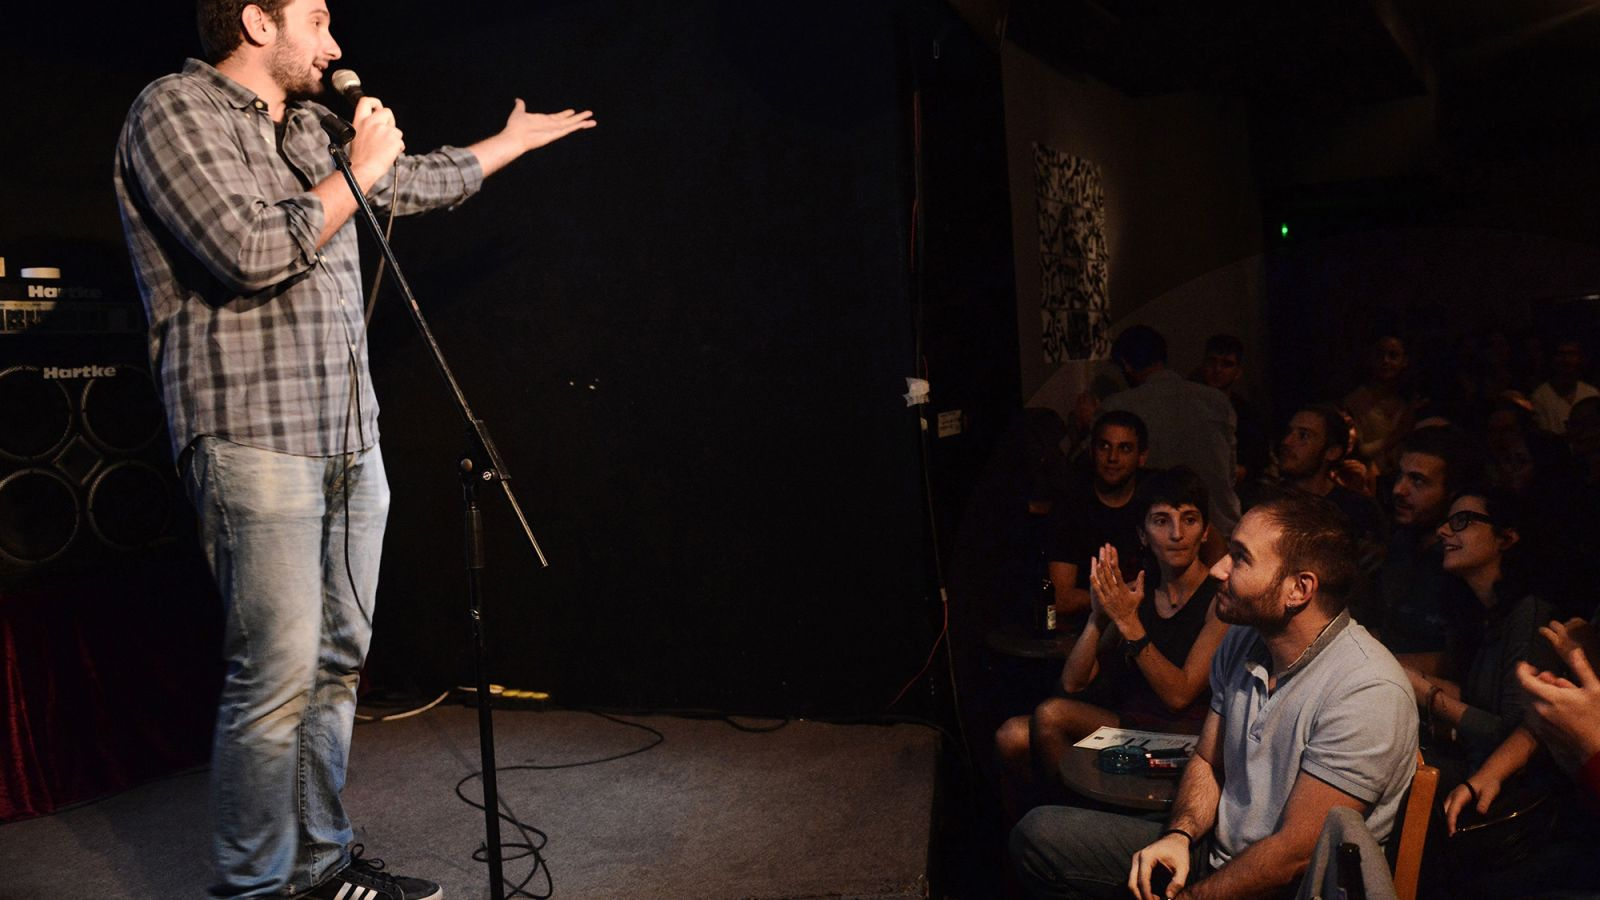 Open Mic Host Asks Audience To Keep Pathetic Smattering Of Applause Going For Next Performer https://t.co/z2XjI3RAxm https://t.co/z7nQRjTUAr